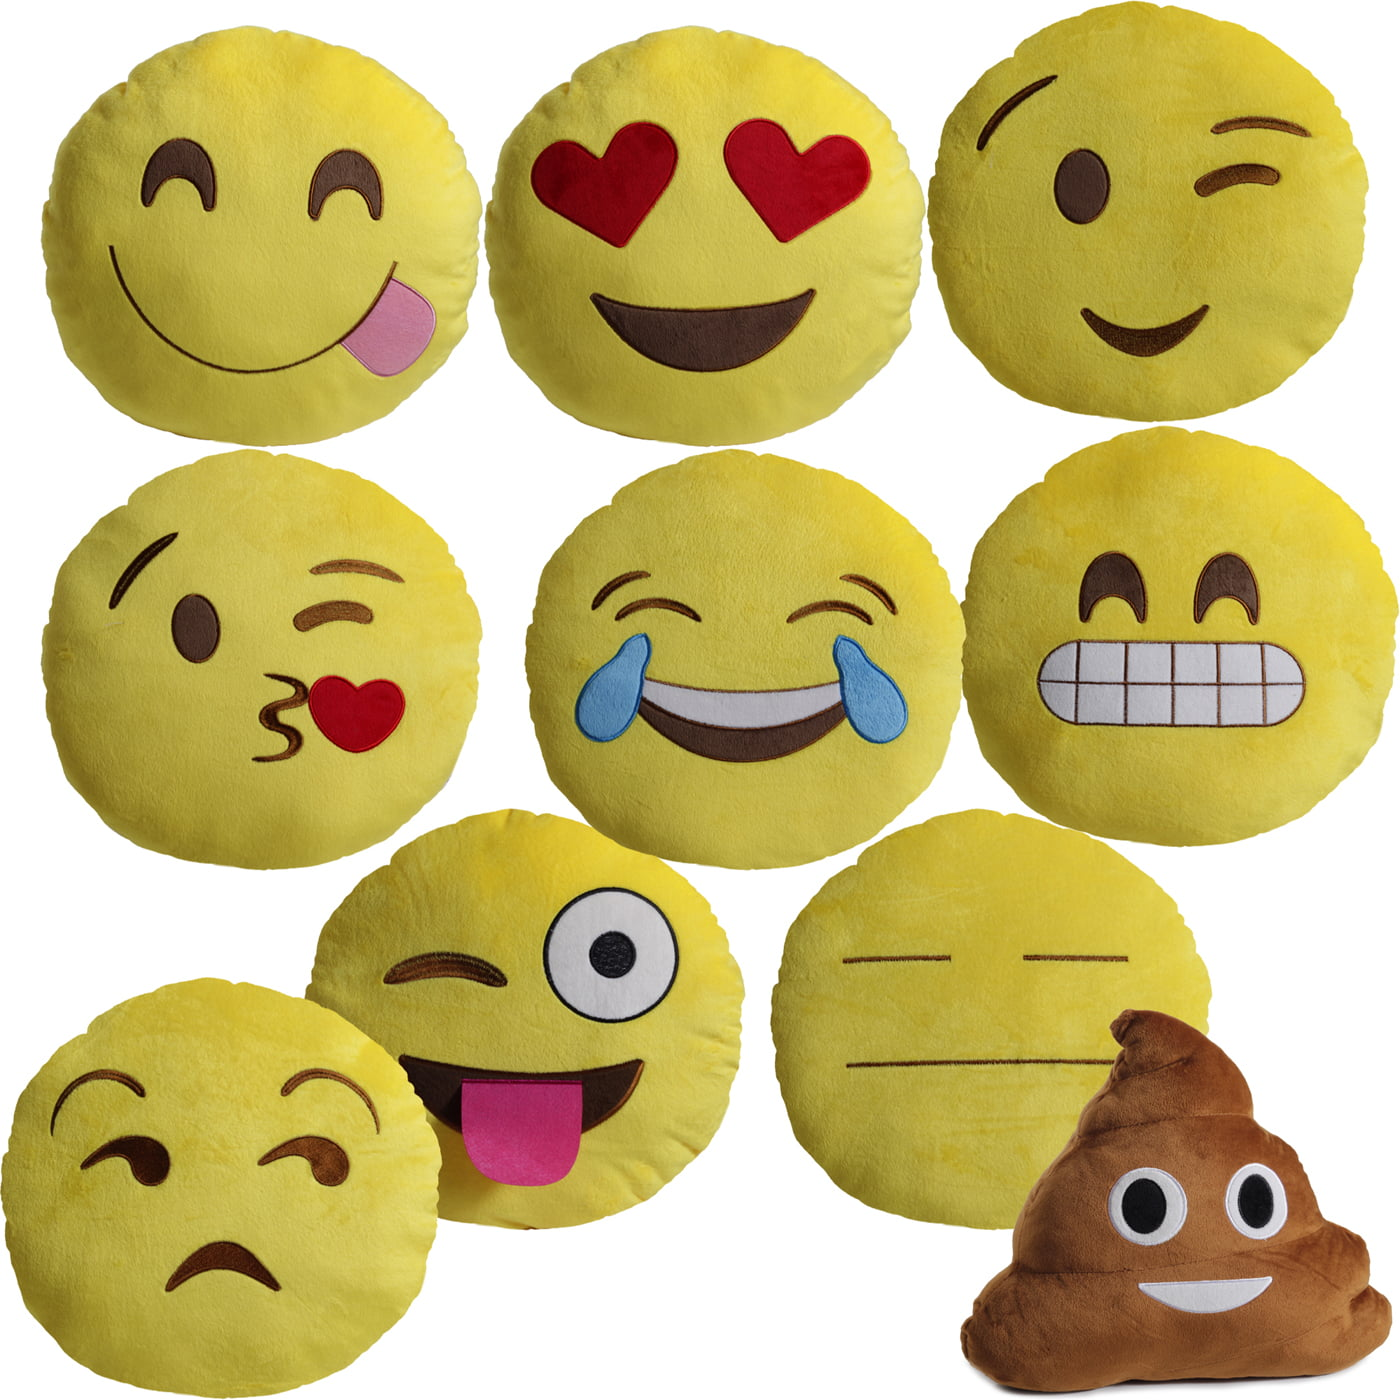 large 13 soft plush emoji throw pillow